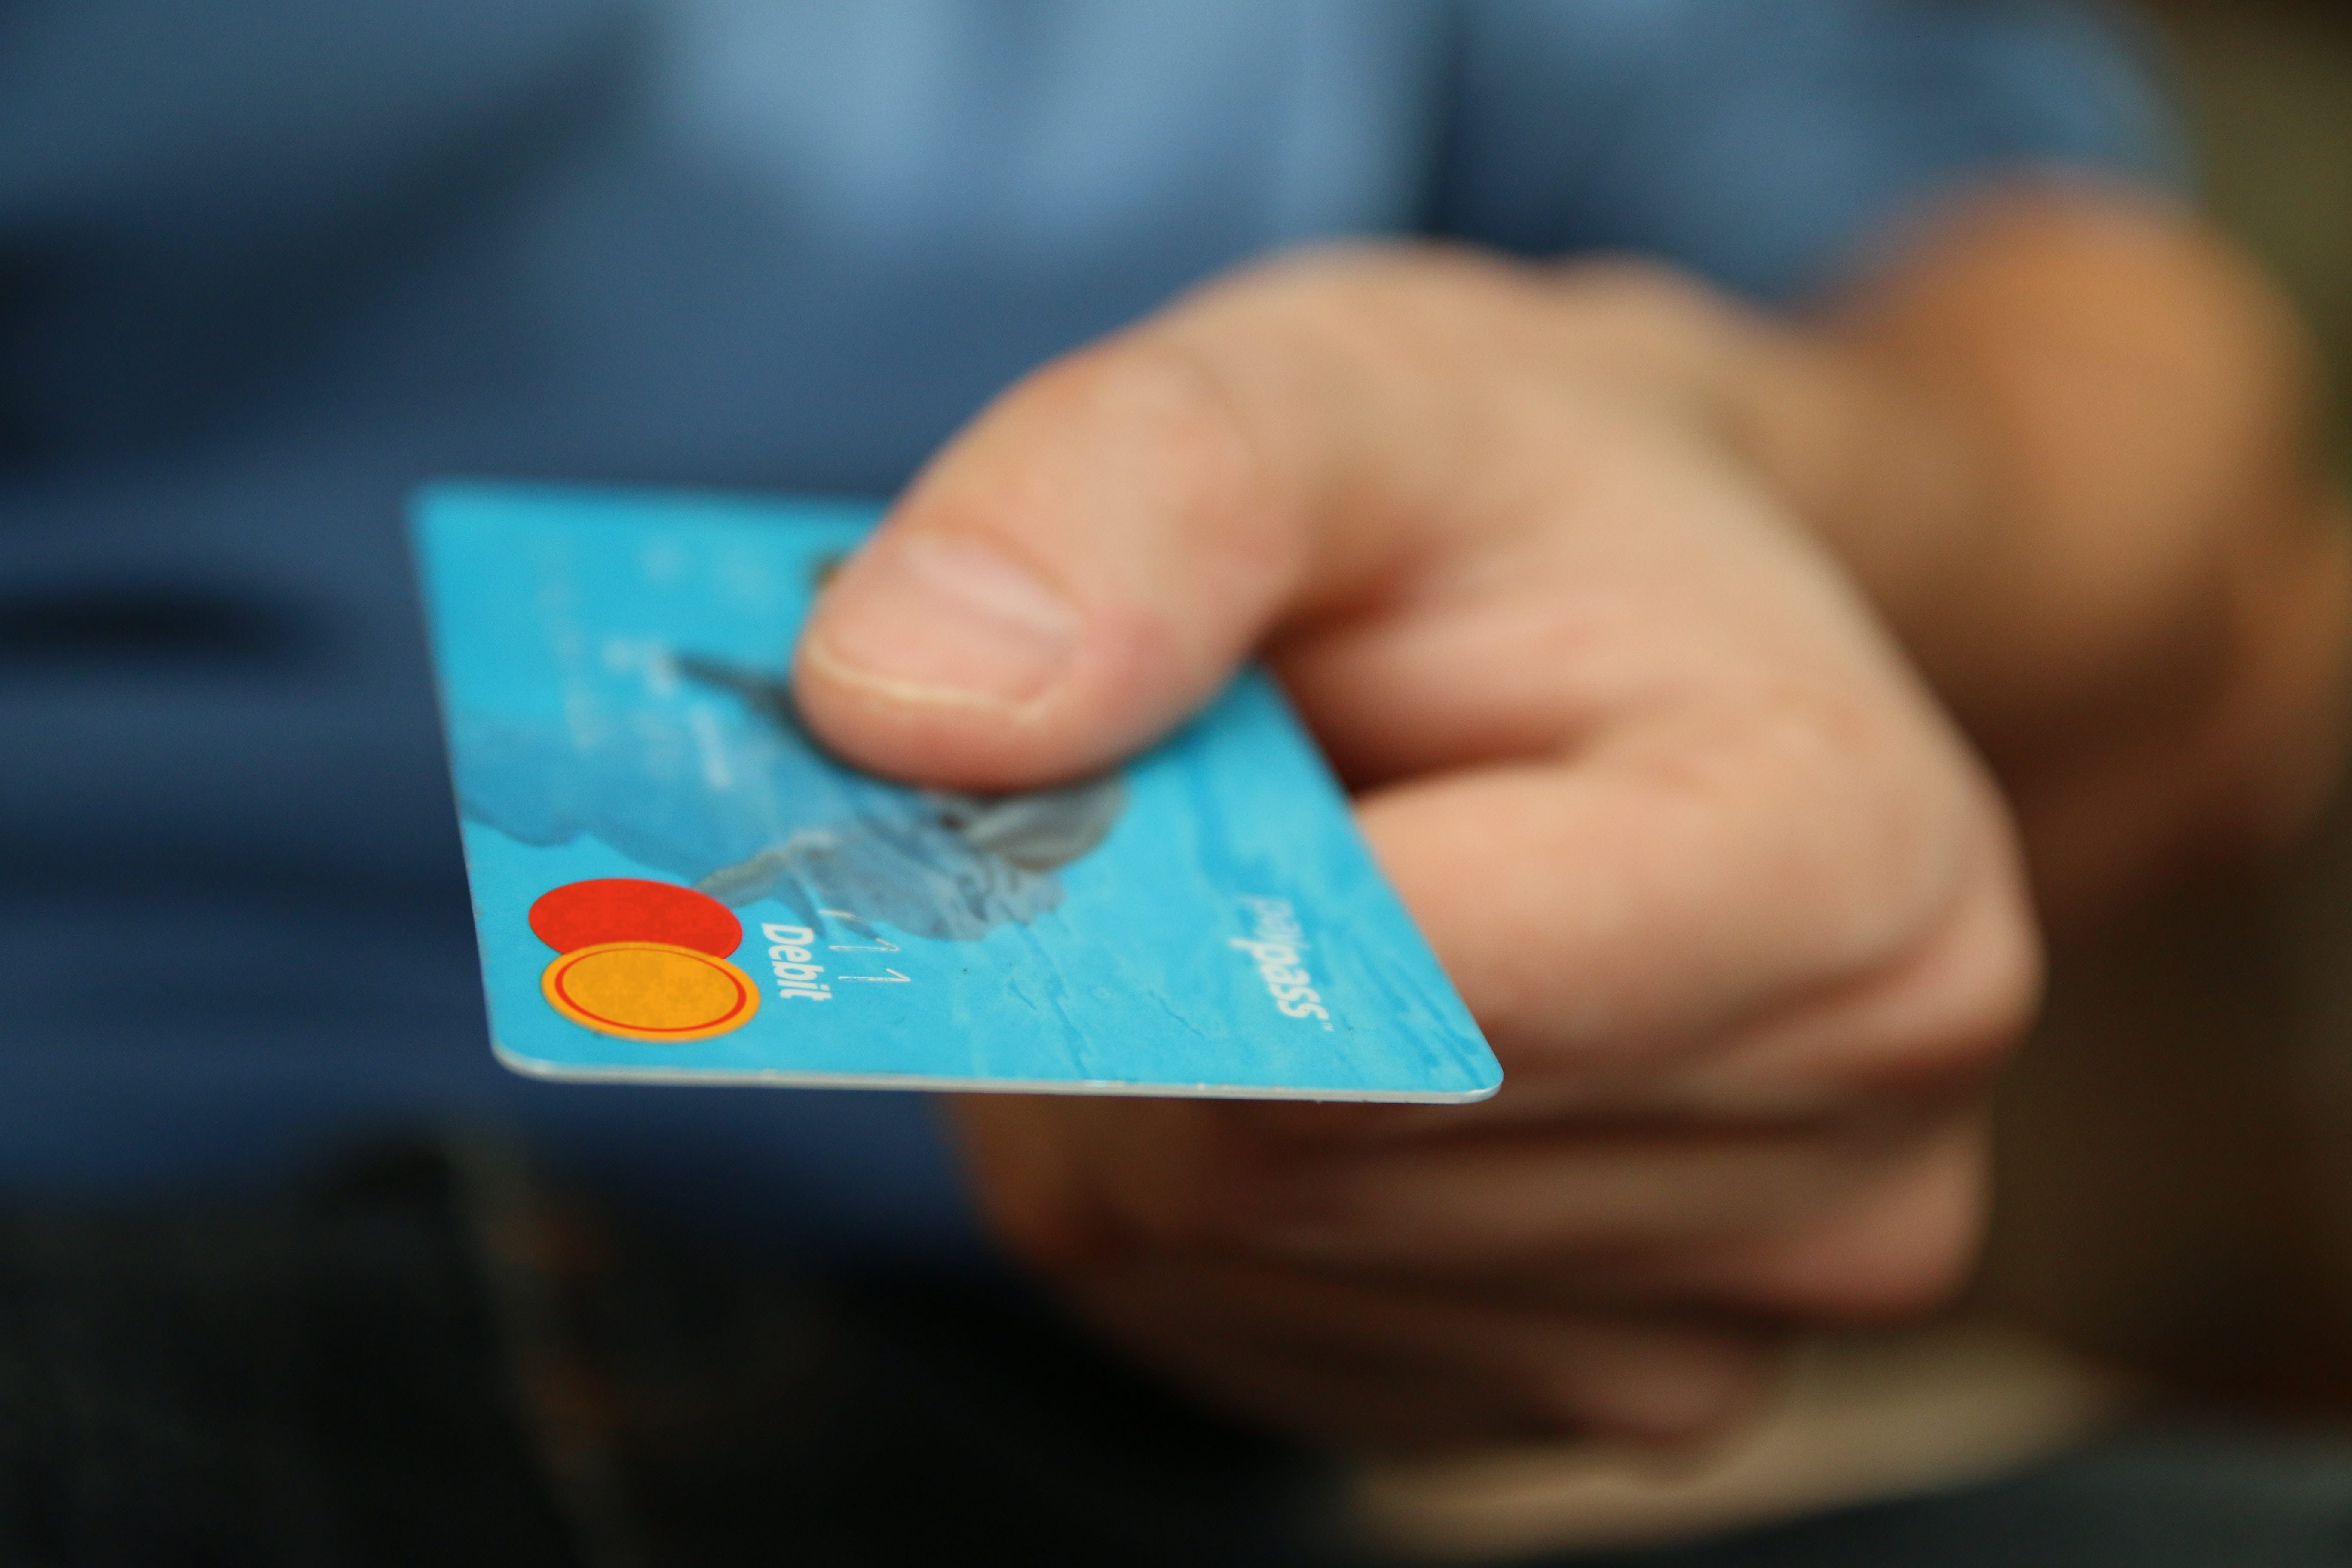 Leverage Home Equity to Cut Down Credit Card Debt